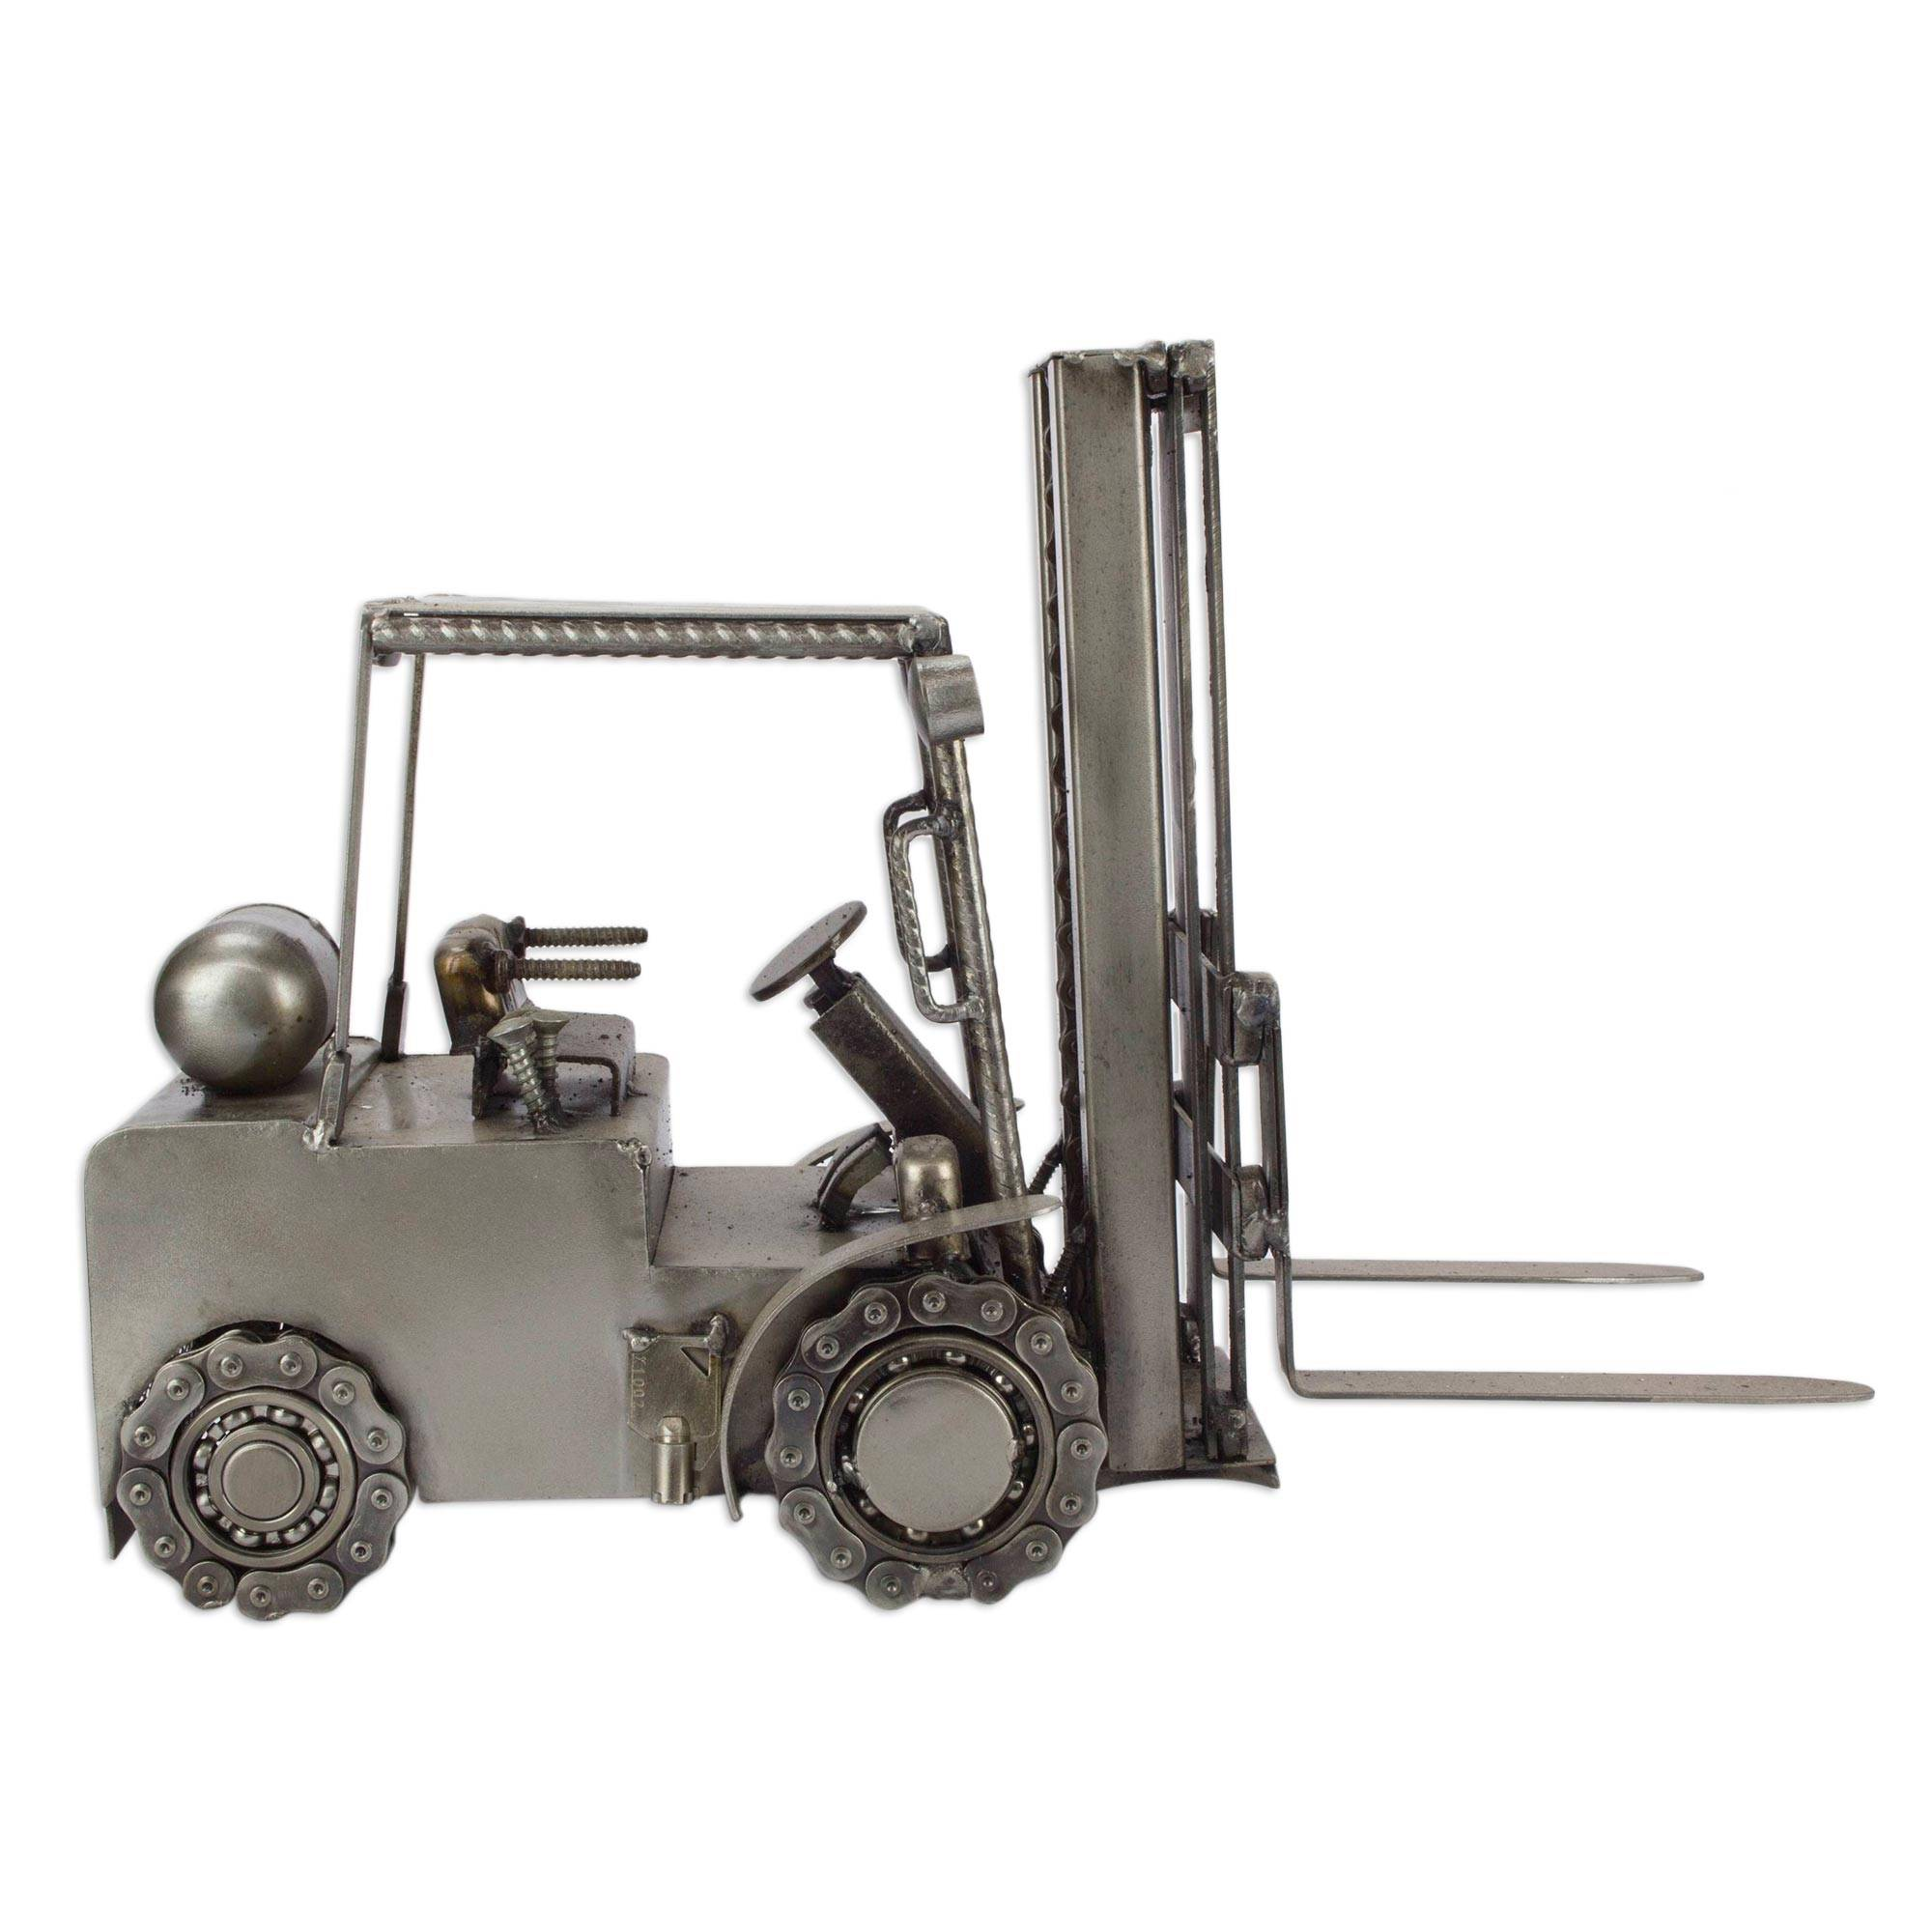 Collectible Recycled Auto Parts and Metal Sculpture, 'Rustic Forklift'